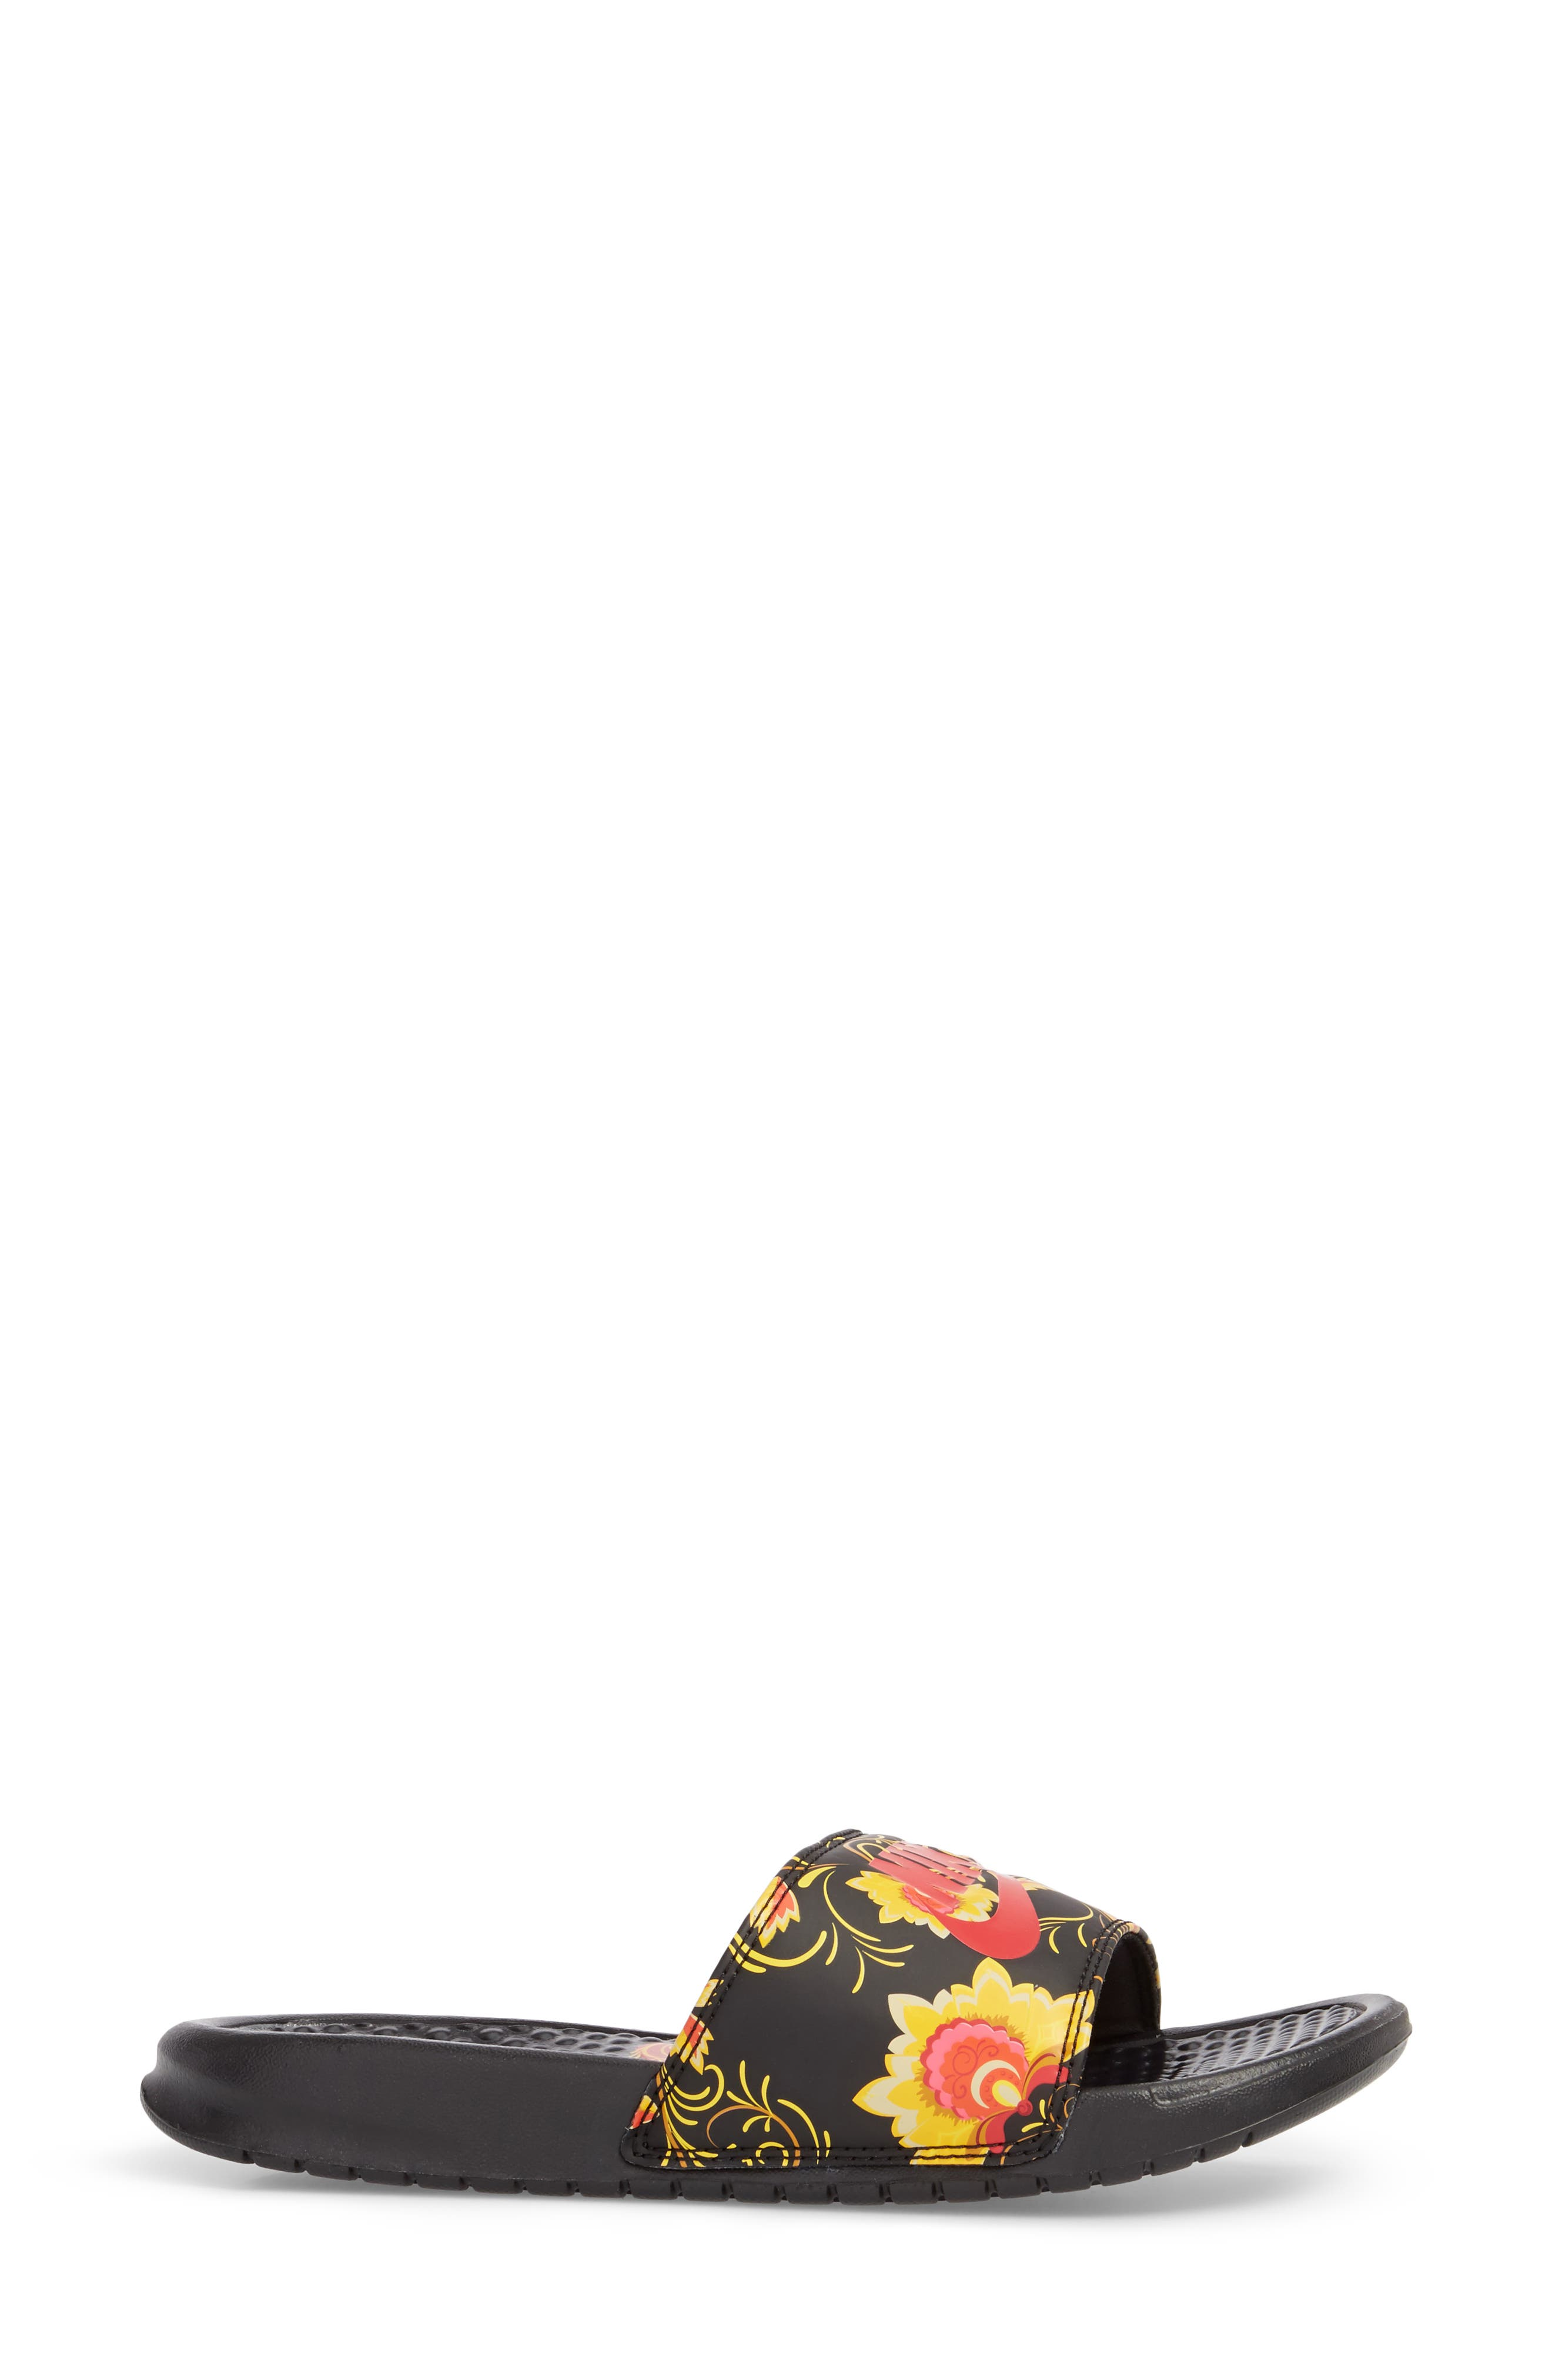 Benassi Floral Print Slide Sandal,                             Alternate thumbnail 3, color,